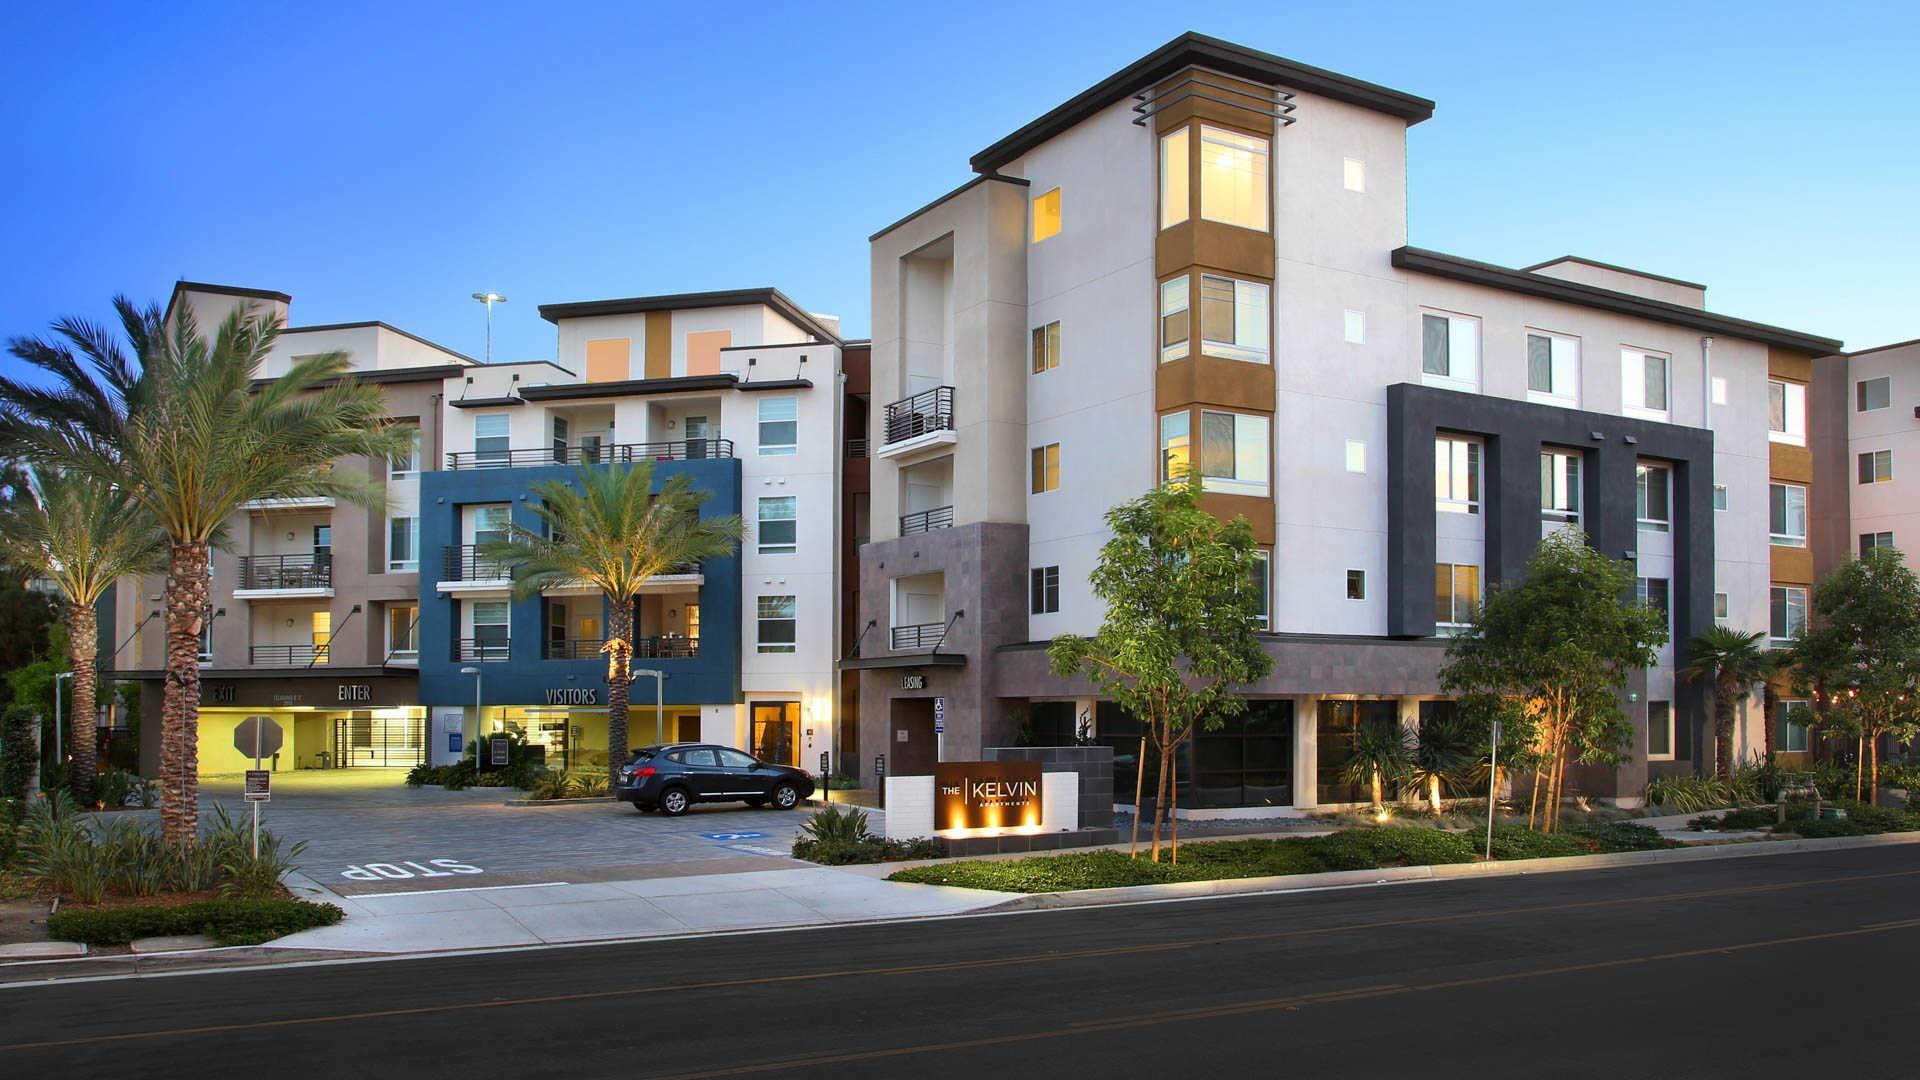 Apartments To Rent In Orange County Ca